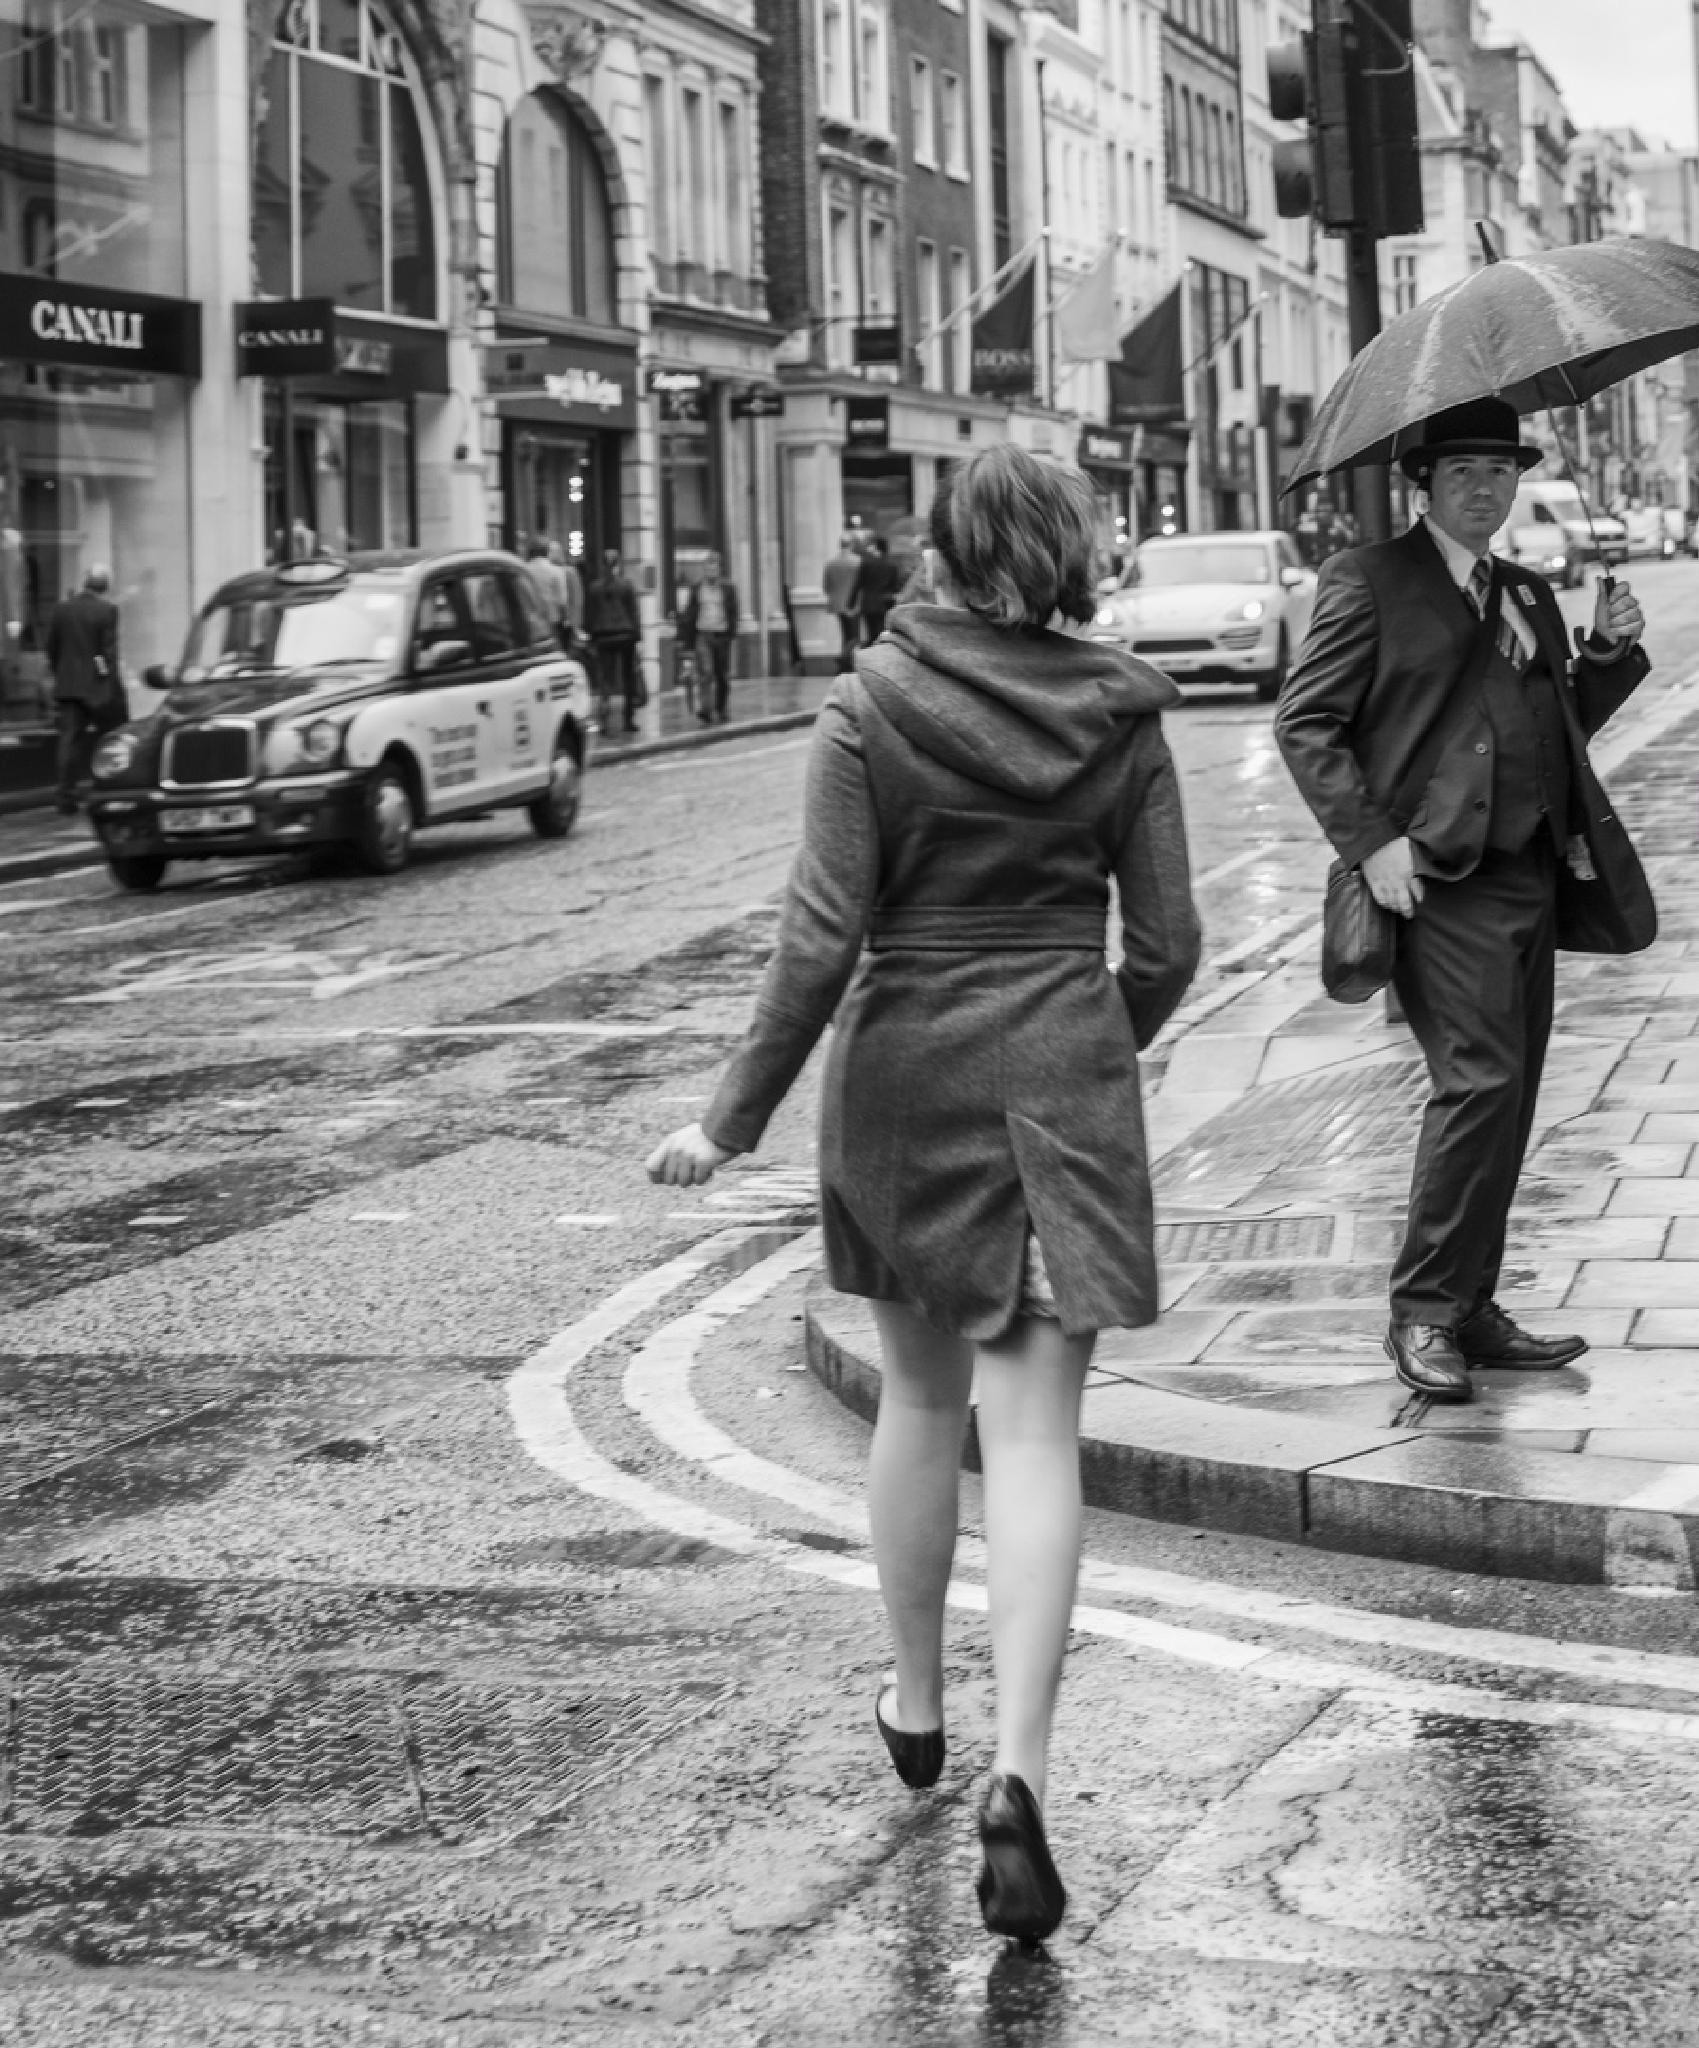 London by Petter Gundhus - Photography